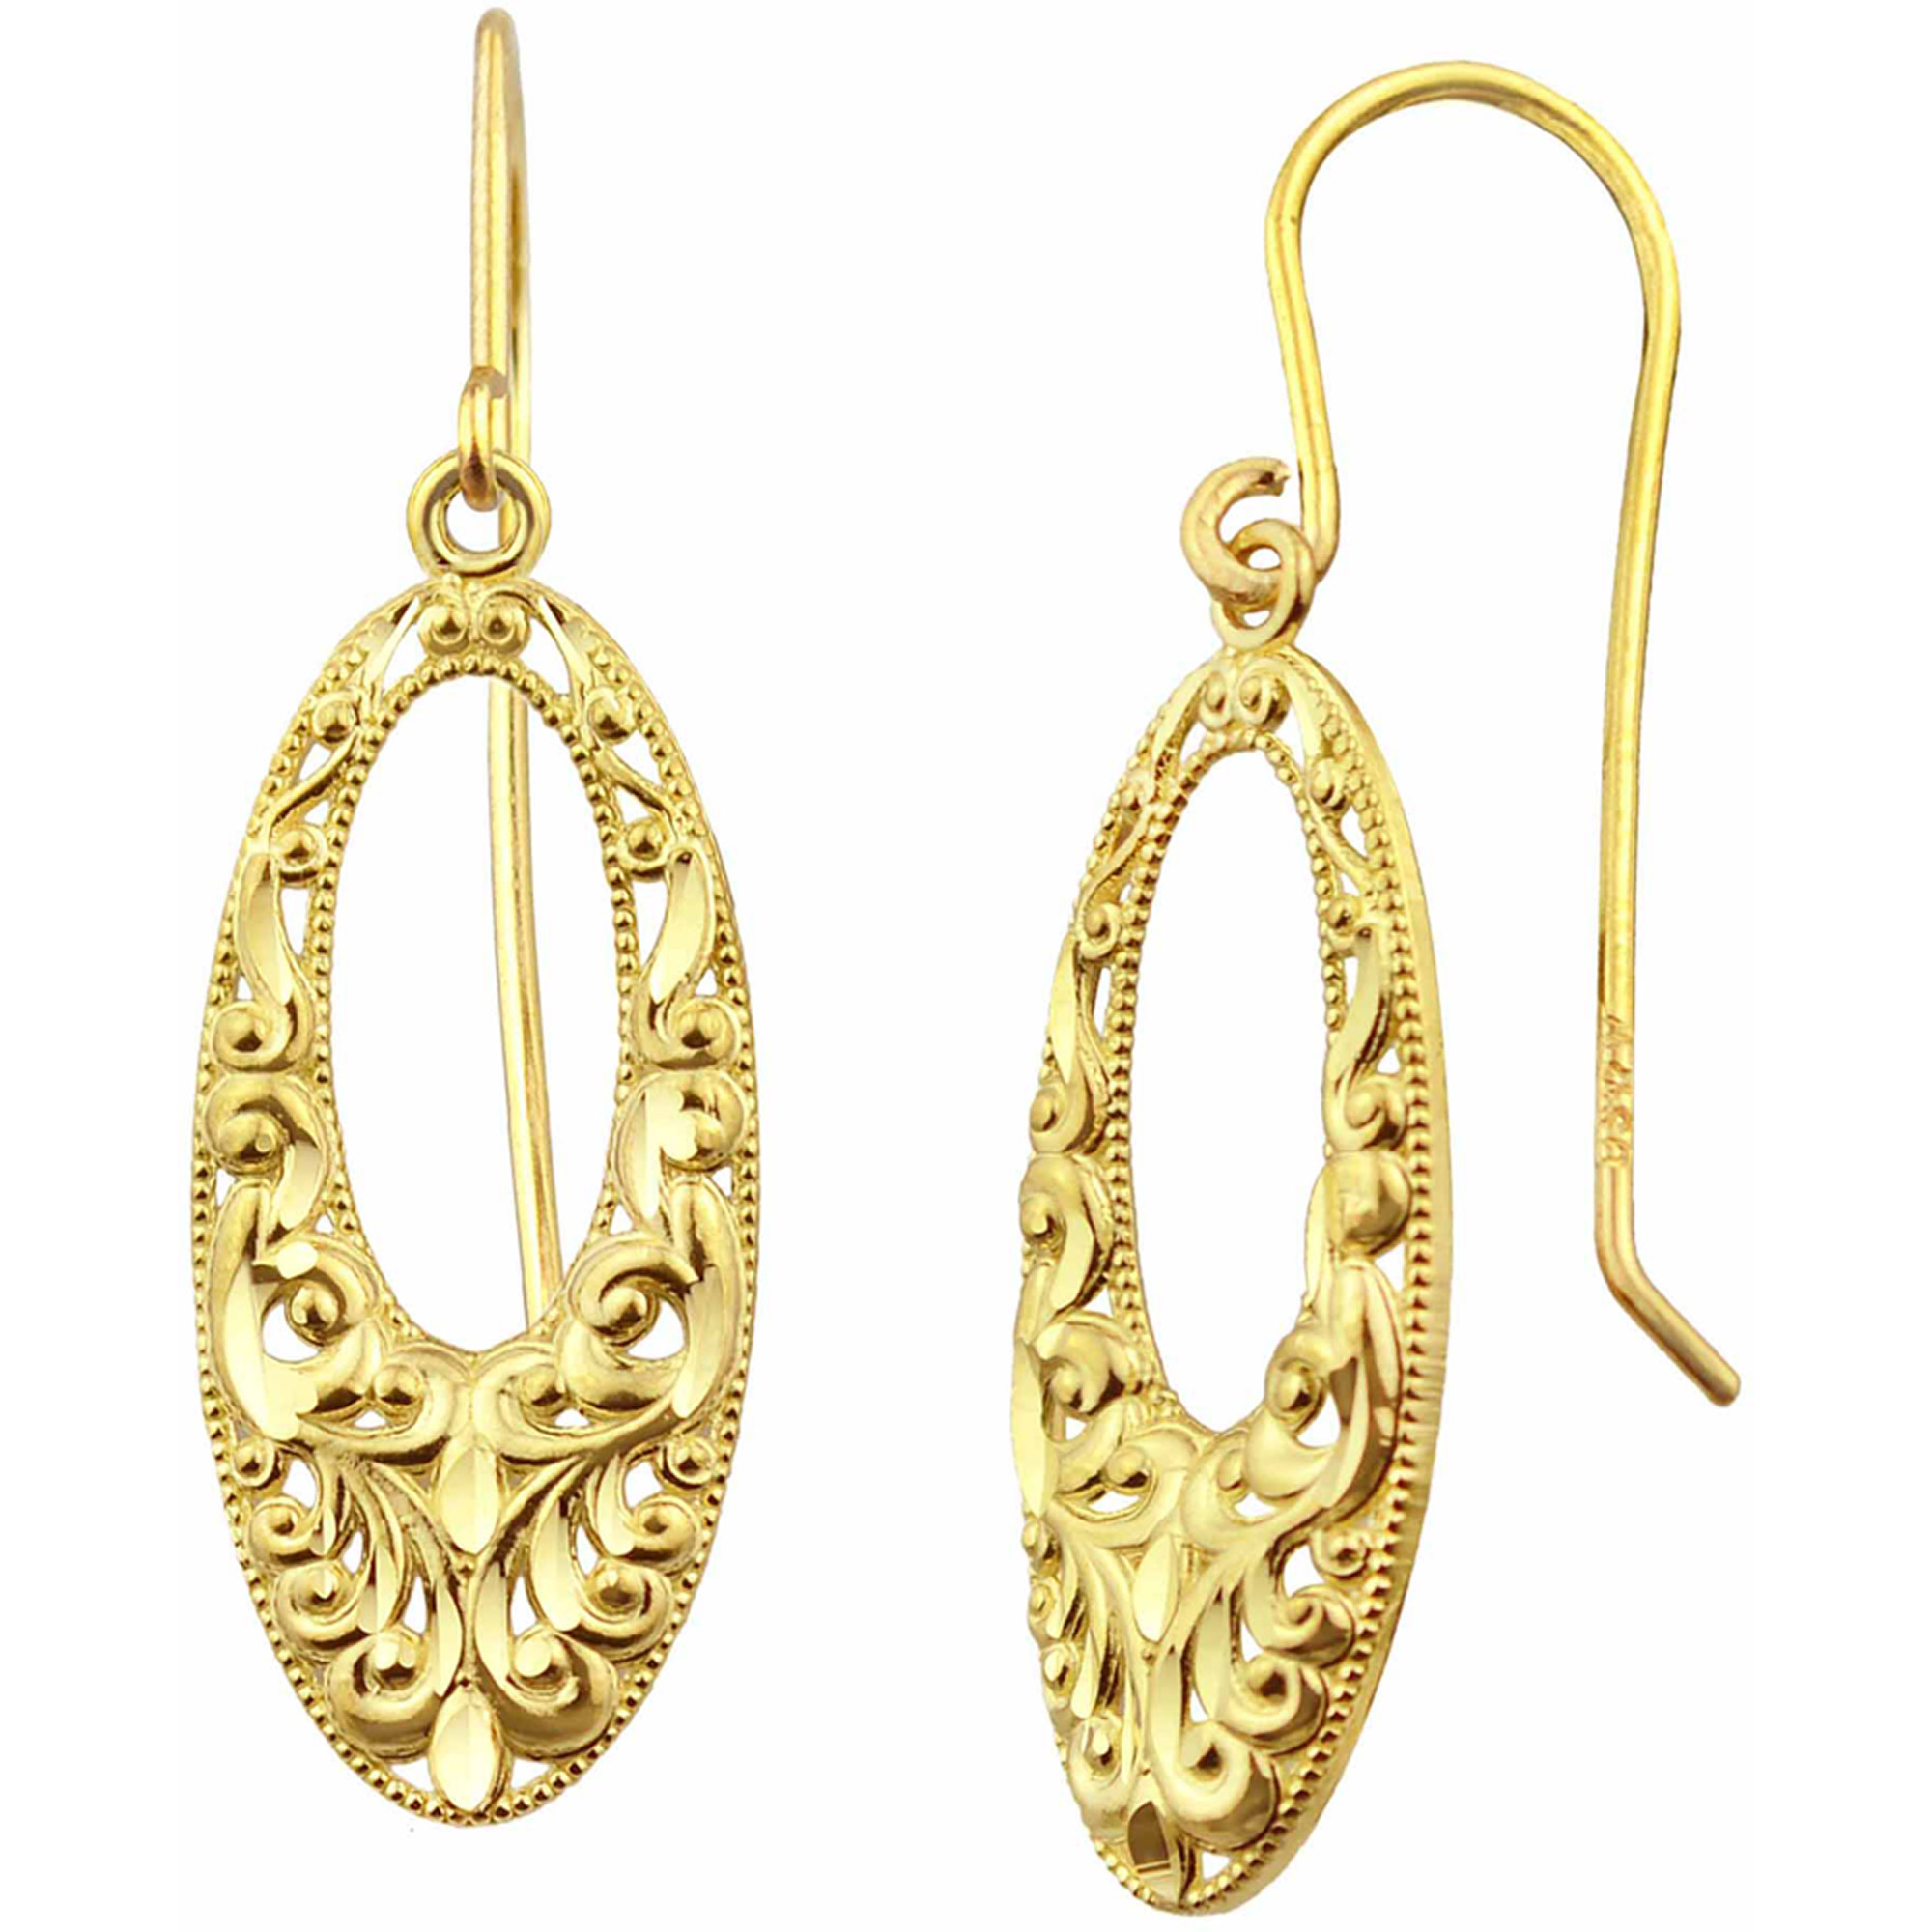 US GOLD 10kt Gold Vintage Lace Oval Drop Earrings